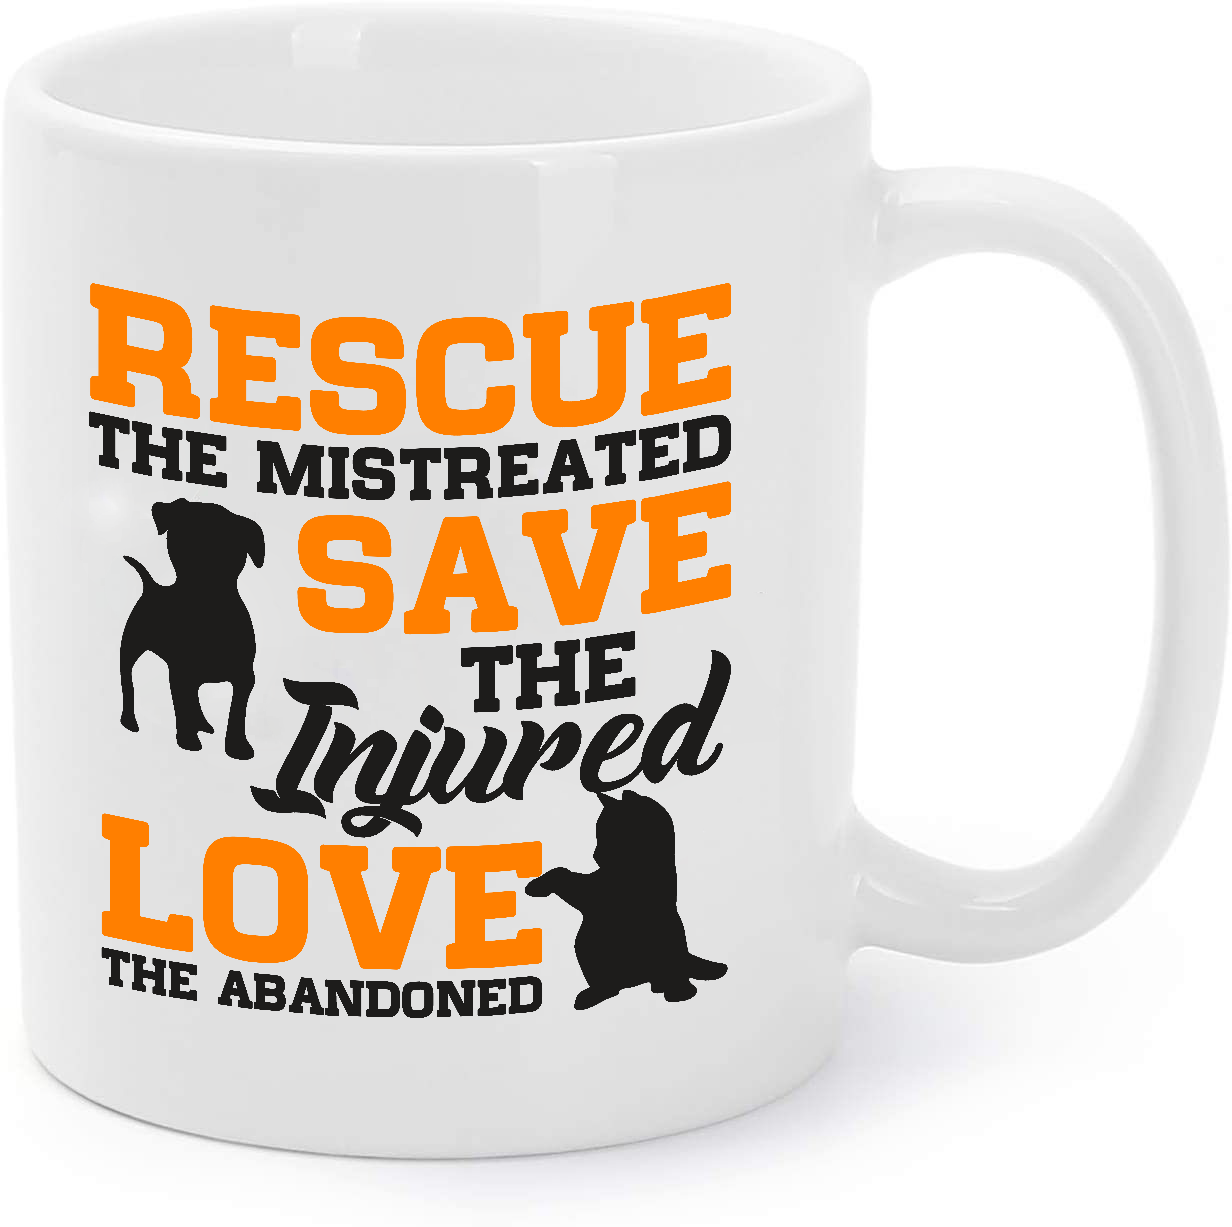 Primary image for Rescue the mistreated save injured love the abandoned Coffee Mug